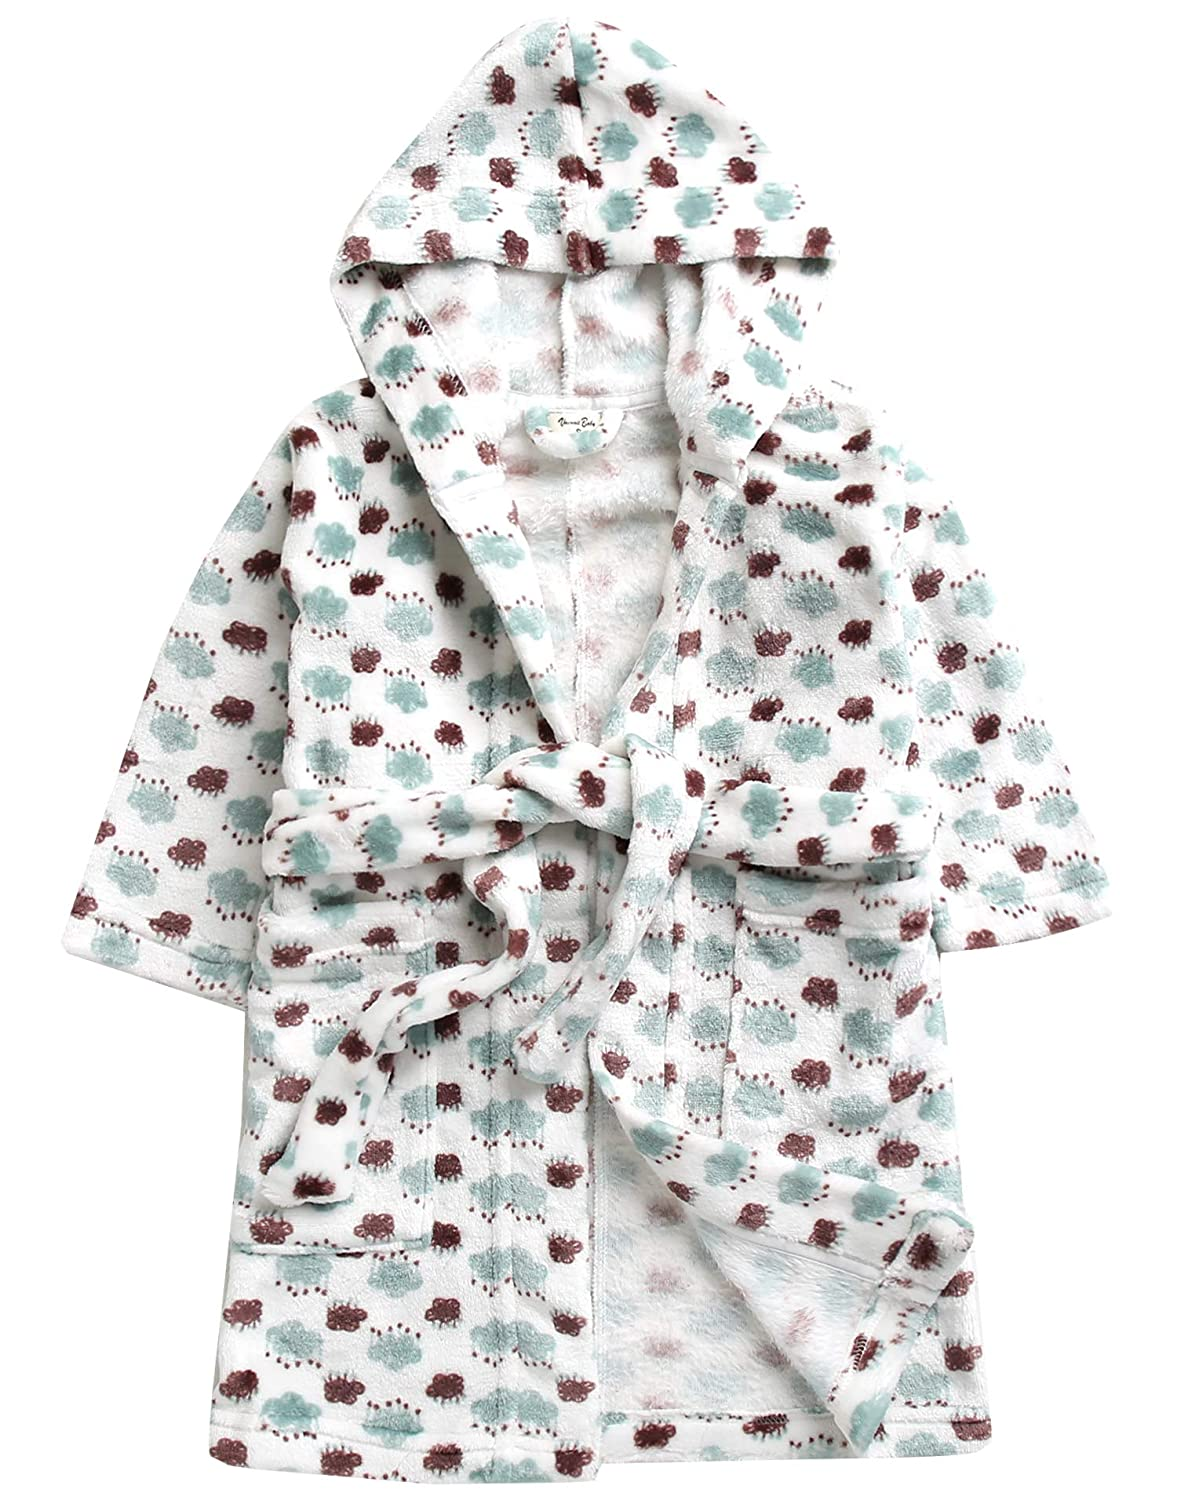 Vaenait baby Ultra Soft Plush Fleece Lightweight Kids Toddler Boys Hooded Bathrobes Sleepwear Robes 1-7 Years ROBE-009